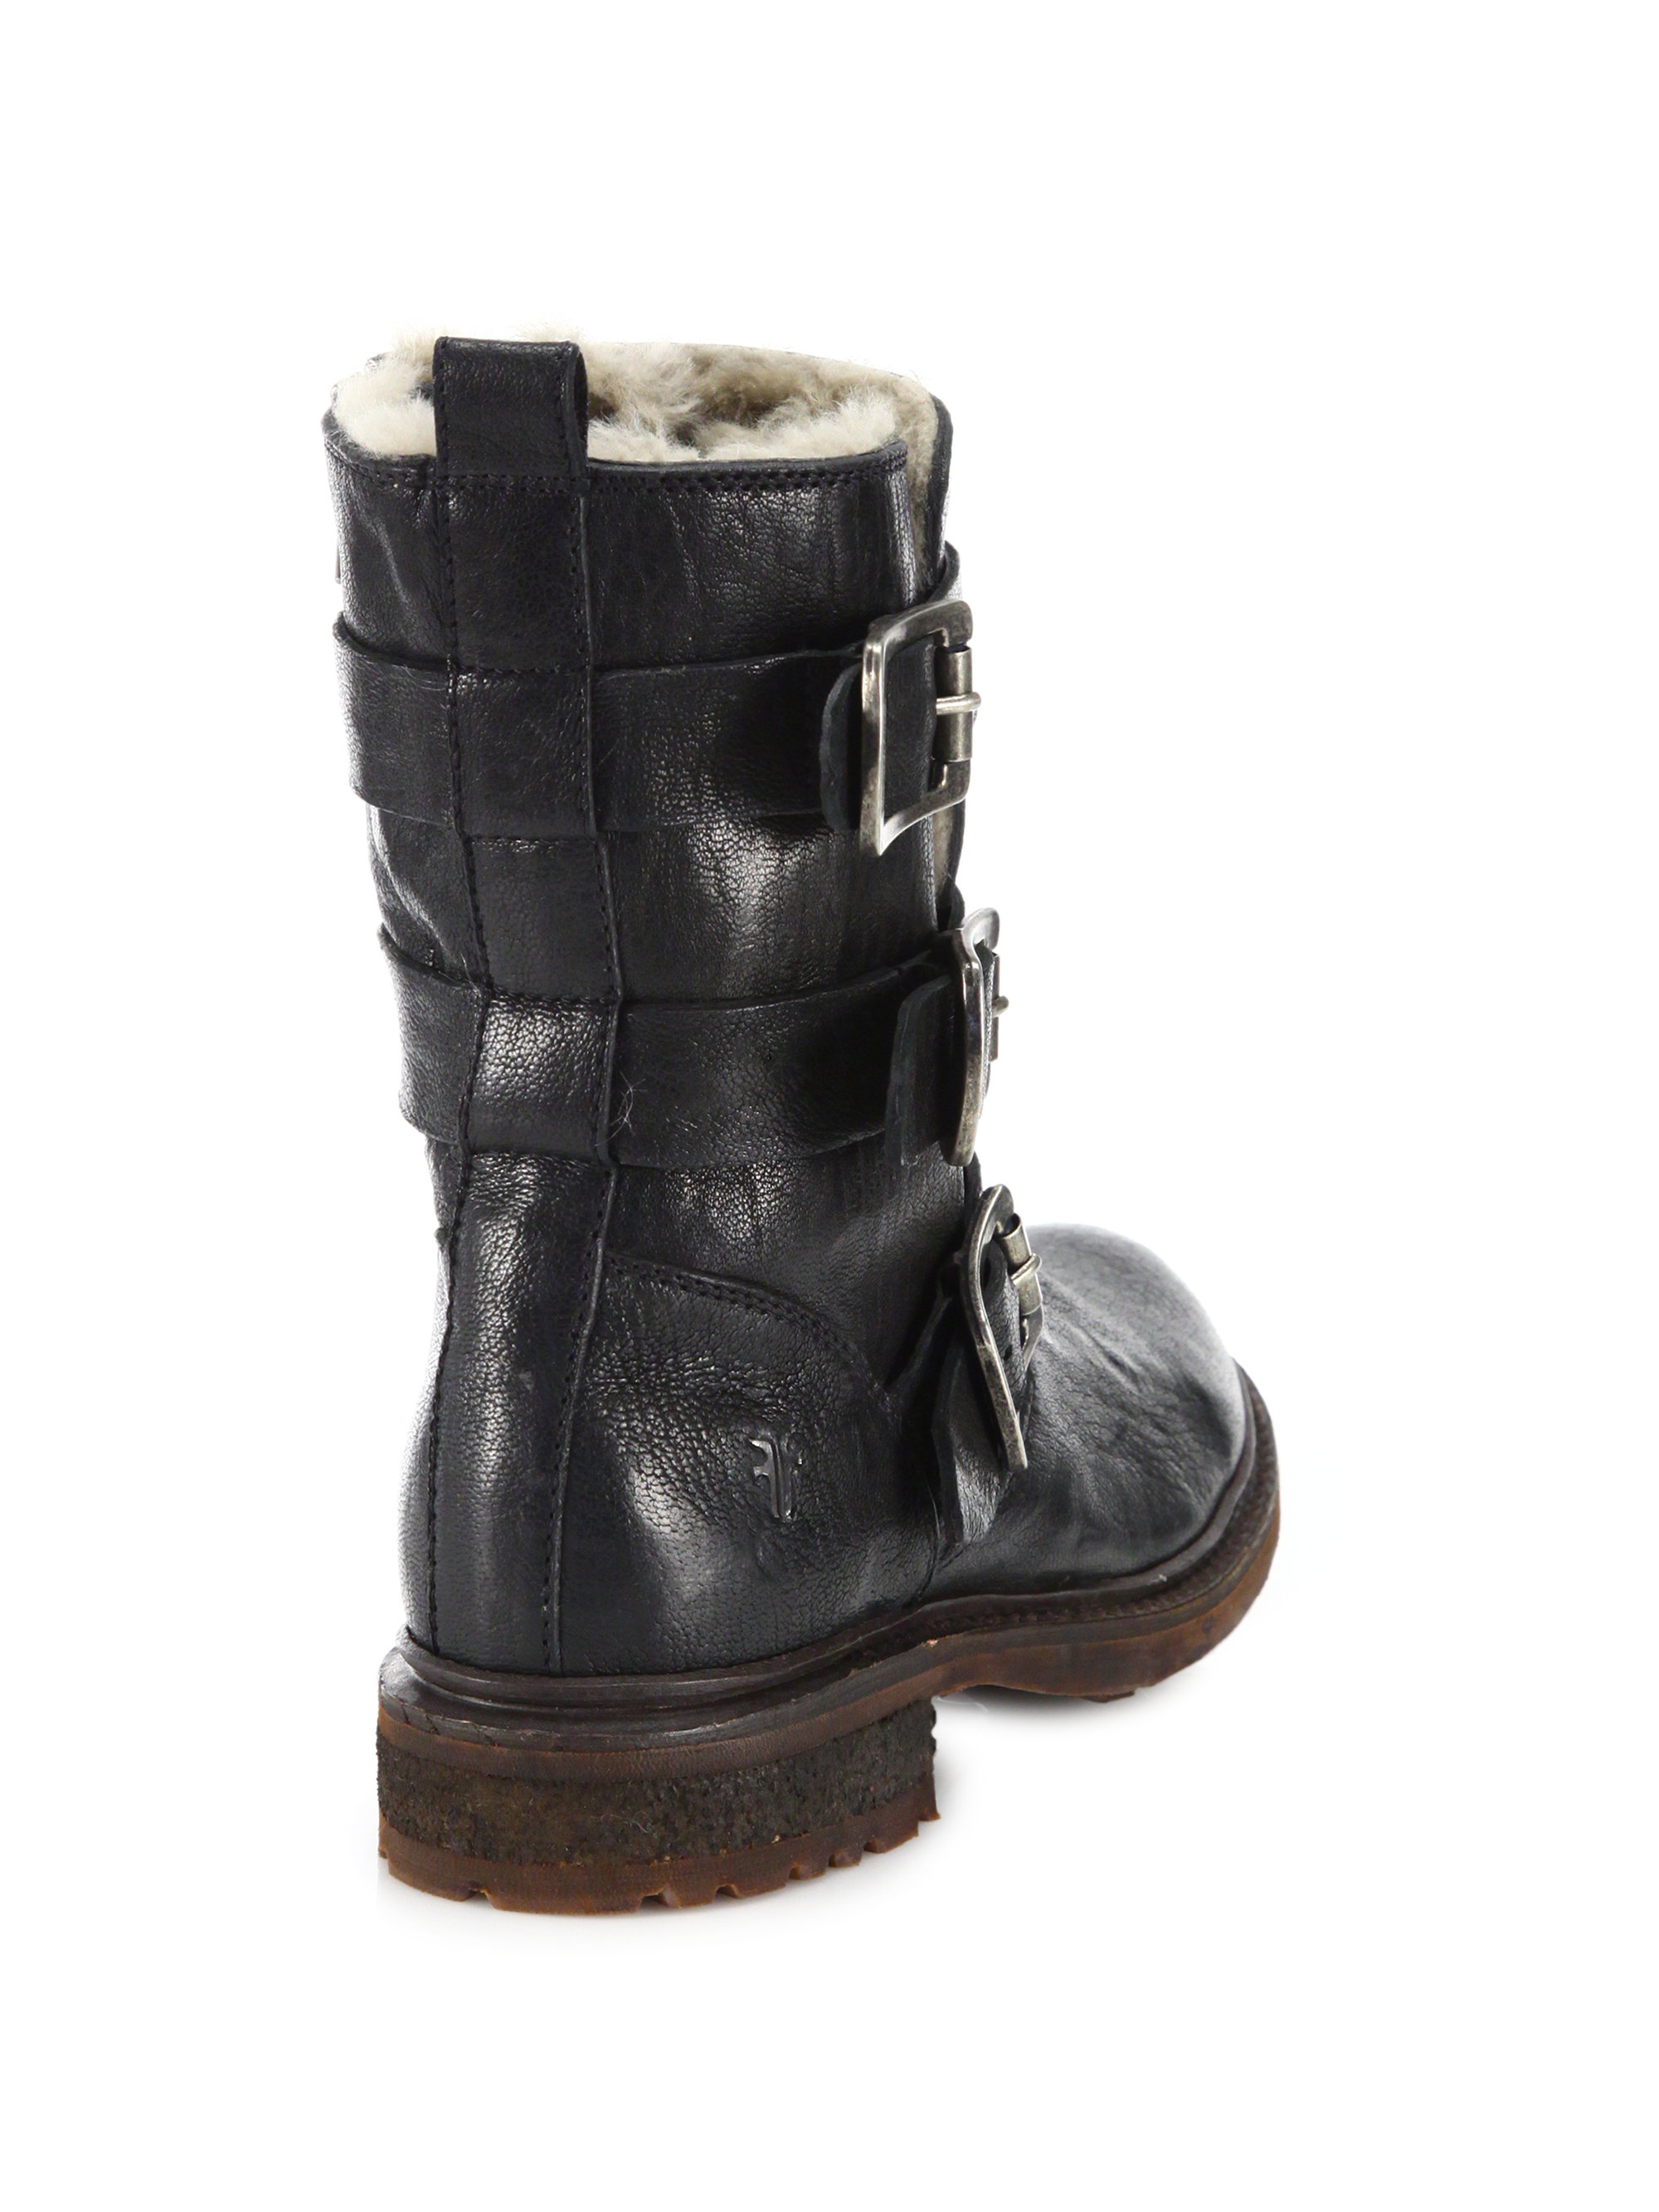 Frye Leather Moto Boots buy cheap looking for buy cheap clearance official cheap price free shipping wholesale price 100% original bi7V68zLJ